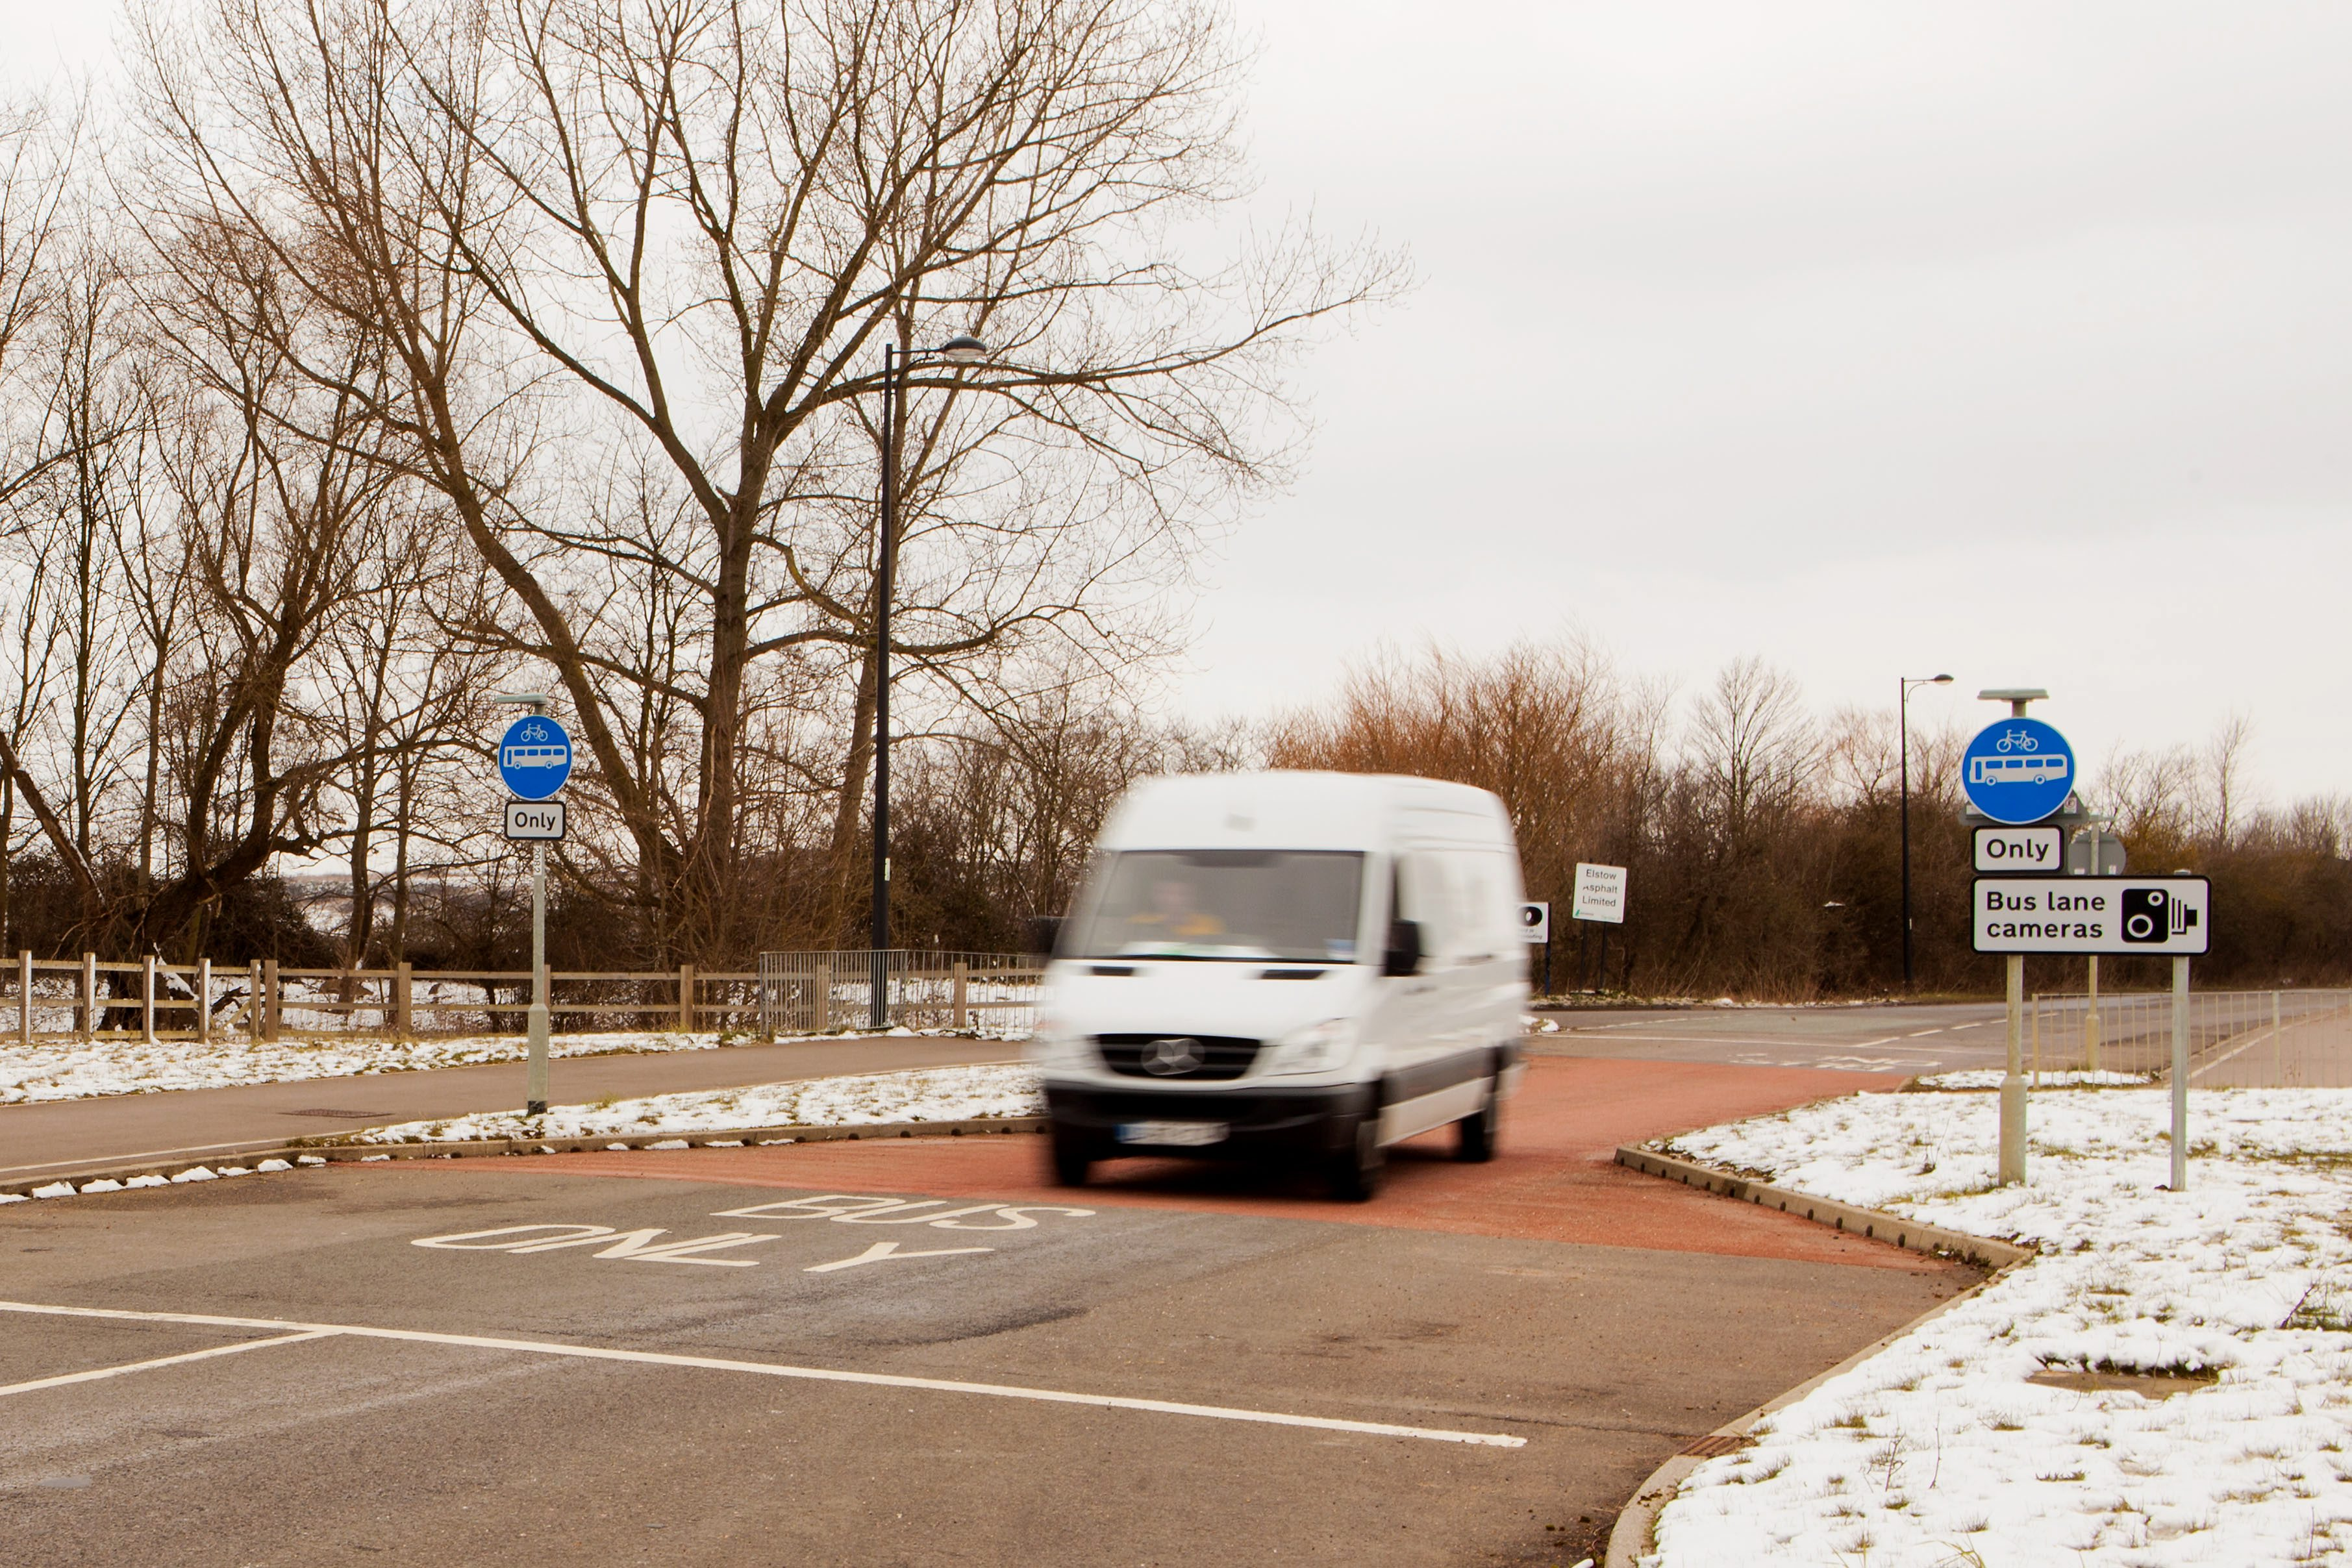 £50 pain over tiny bus lane: Drivers claim ten-metre car-free route is a money-making scam